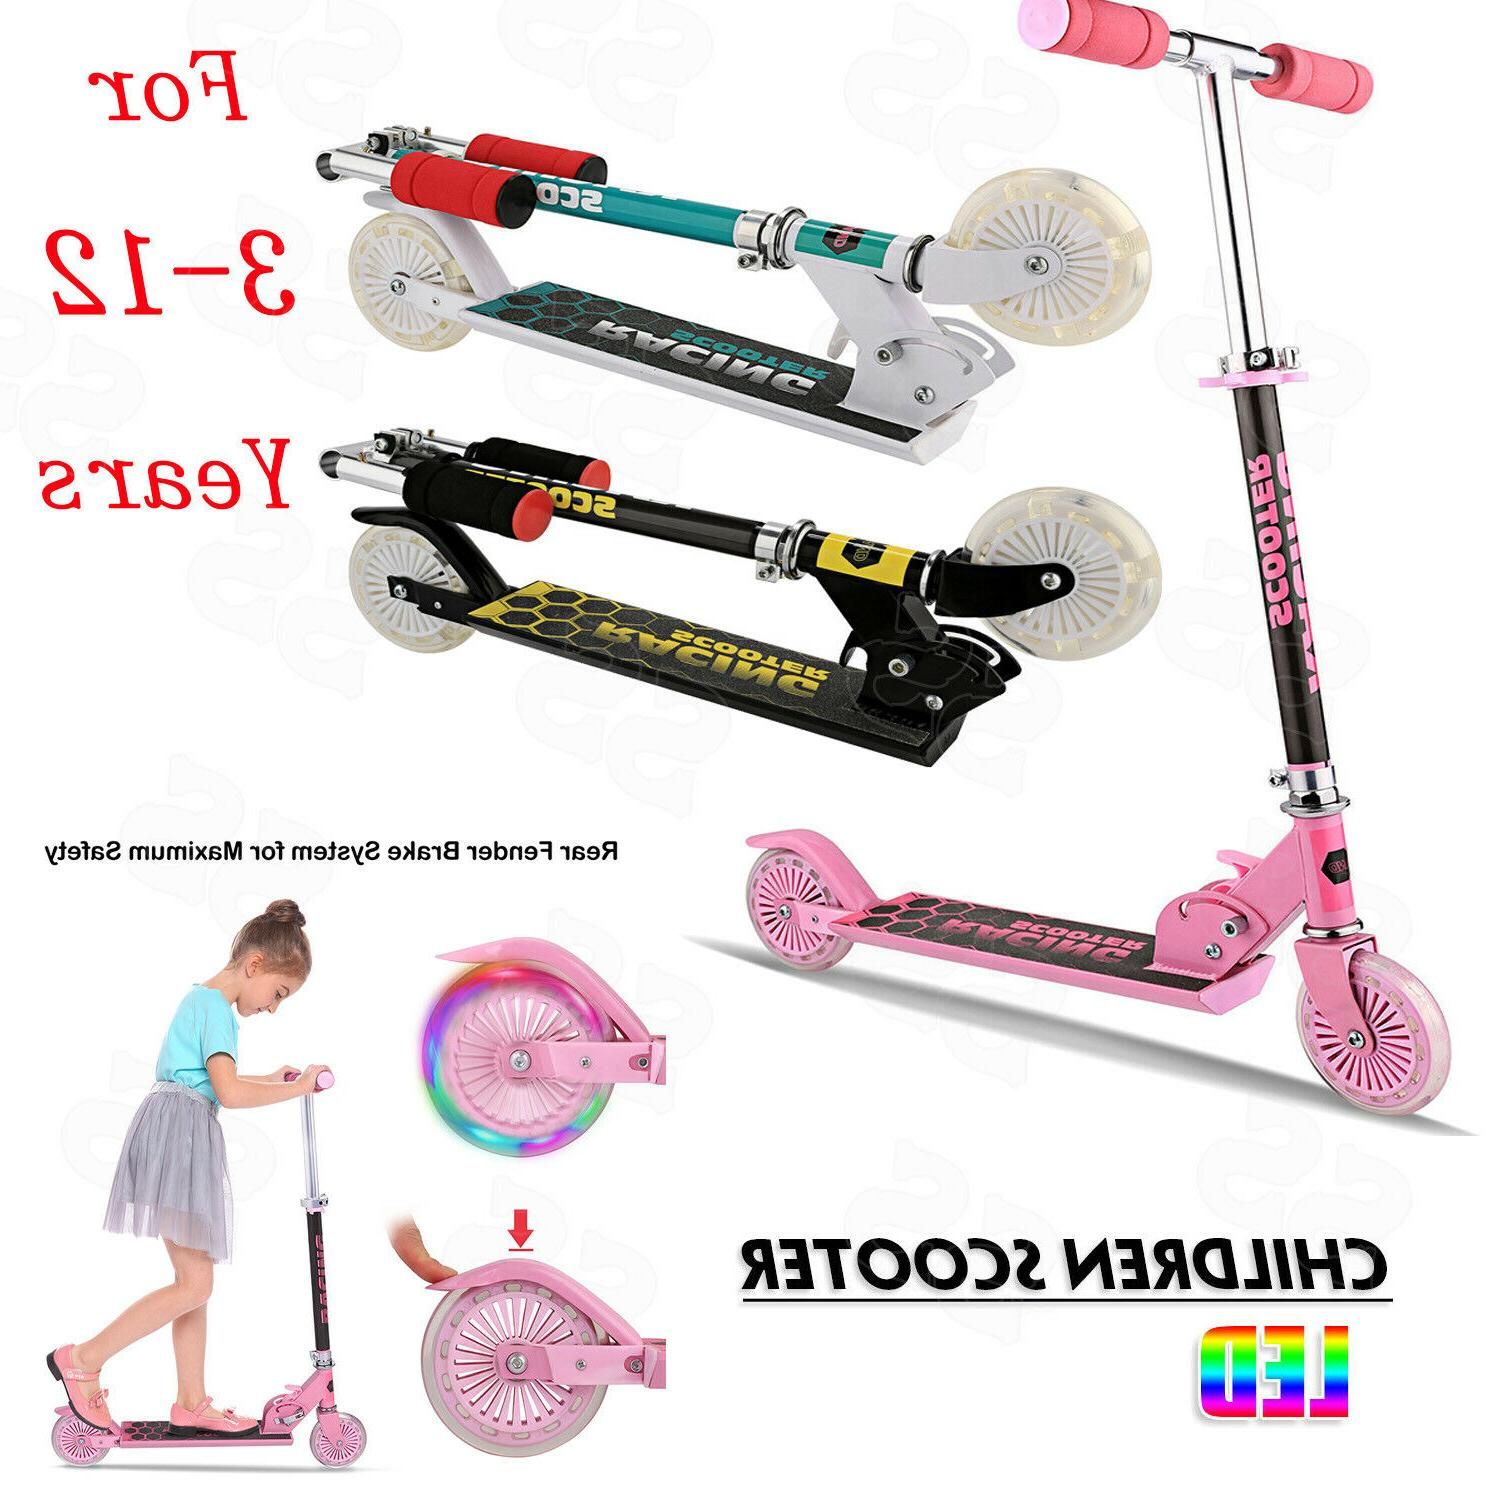 scooter deluxe for adjustable kick scooters girls